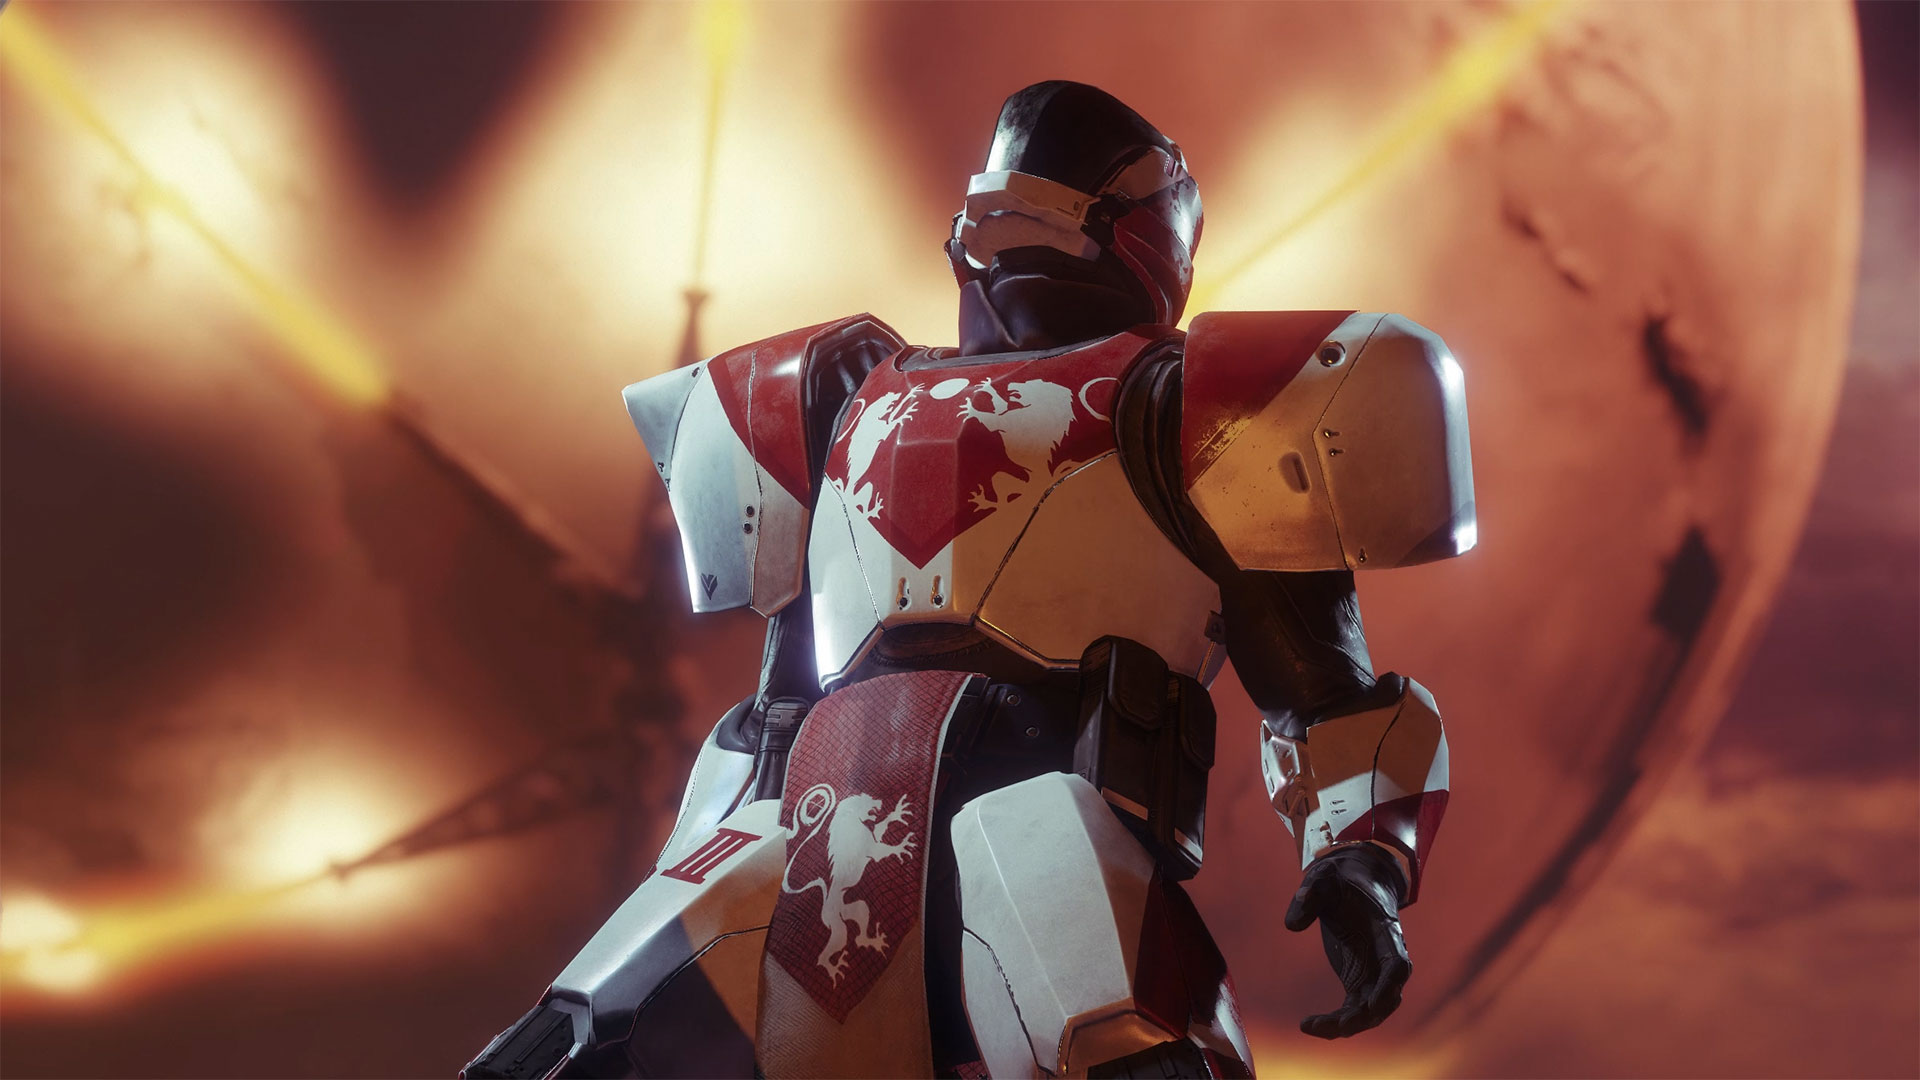 Destiny 2 PC 4K guide: what you'll need to hit 60 fps | PC Gamer